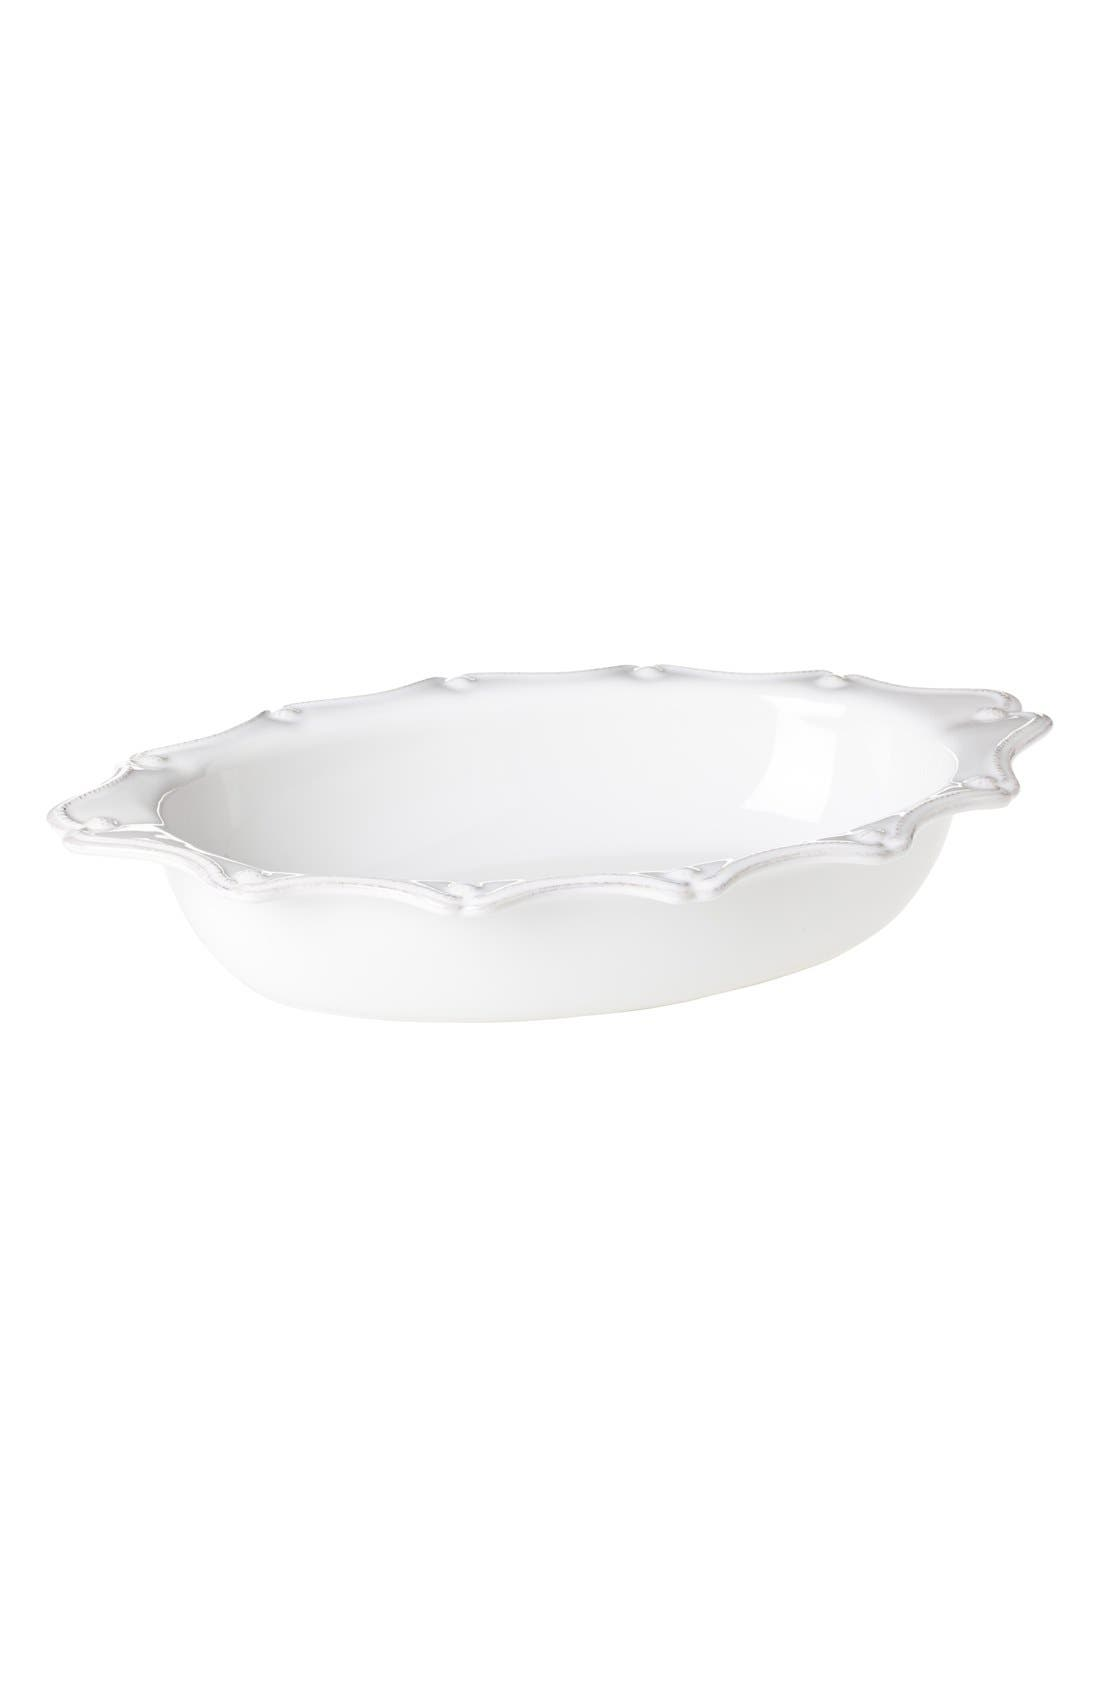 JULISKA 'Berry and Thread' Oval Baking Dish